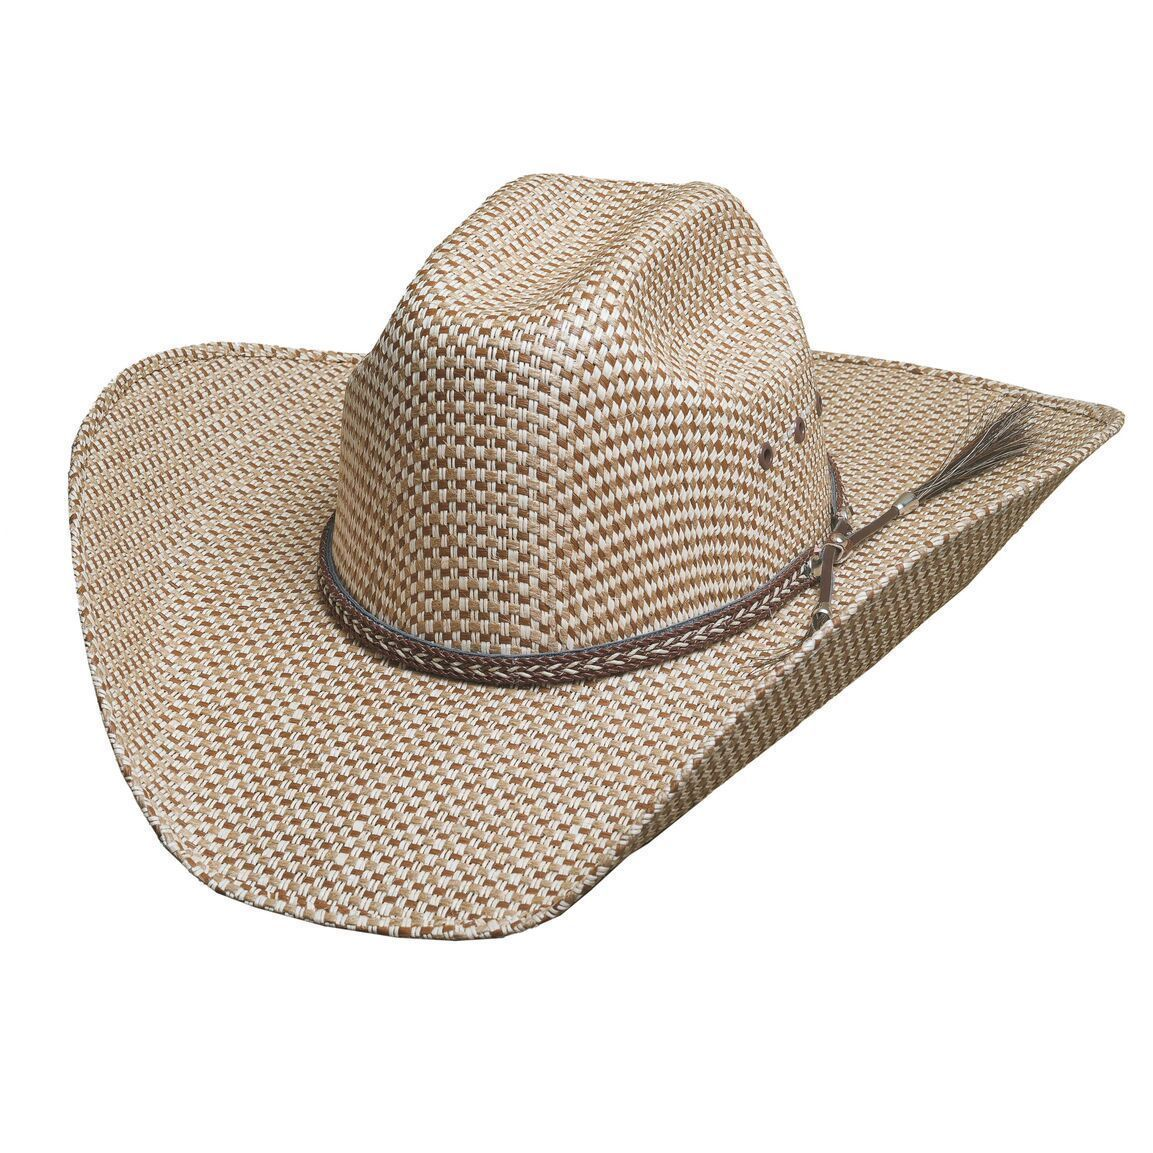 Point At You 50X Straw Cowboy Hat  ad7a69a78862